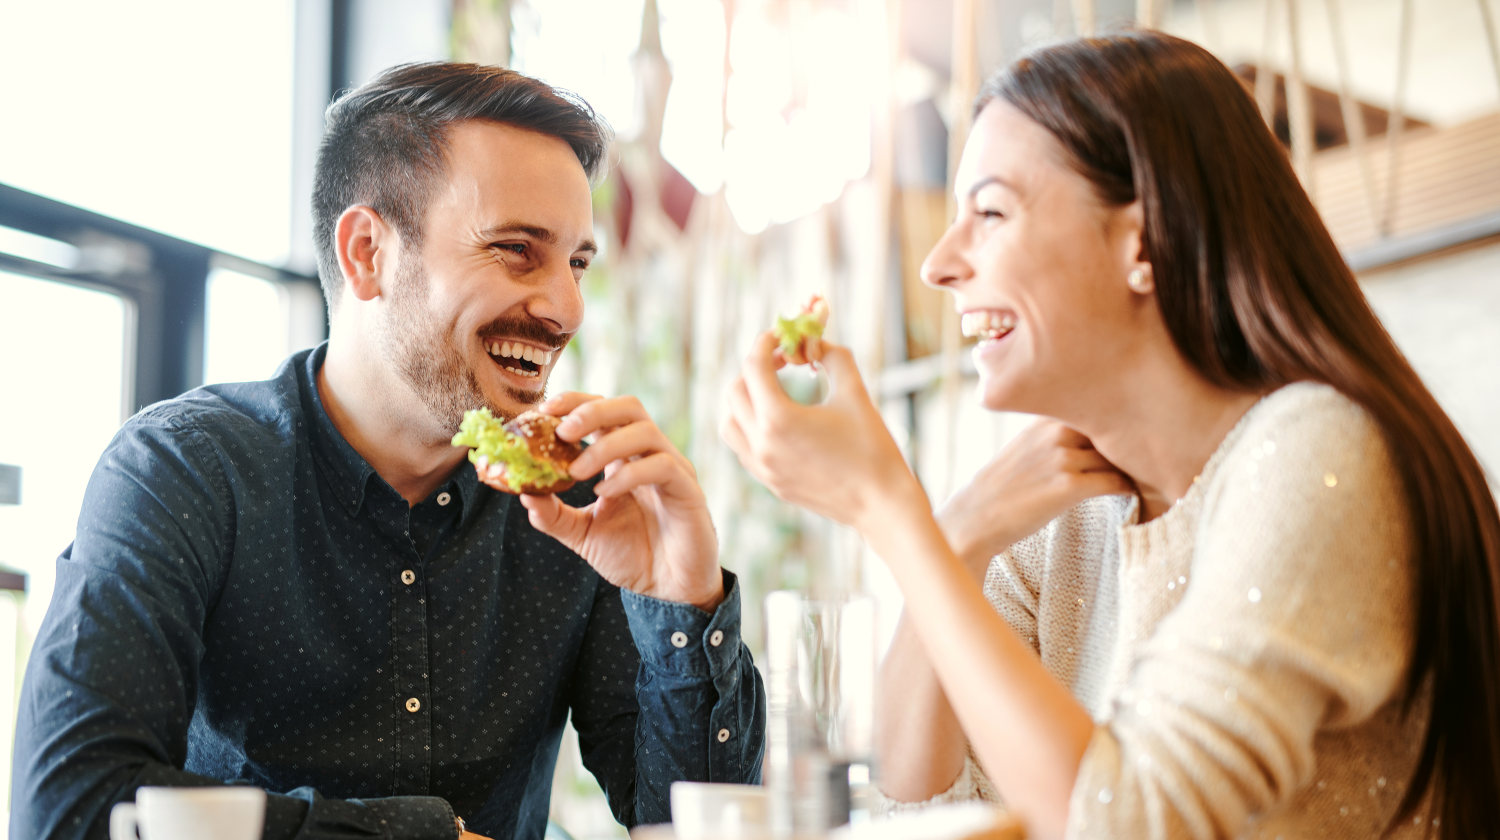 Featured | Happy loving couple enjoying breakfast in a cafe | Healthy Habits To Adopt In Your Daily Life | Daily Healthy Habits